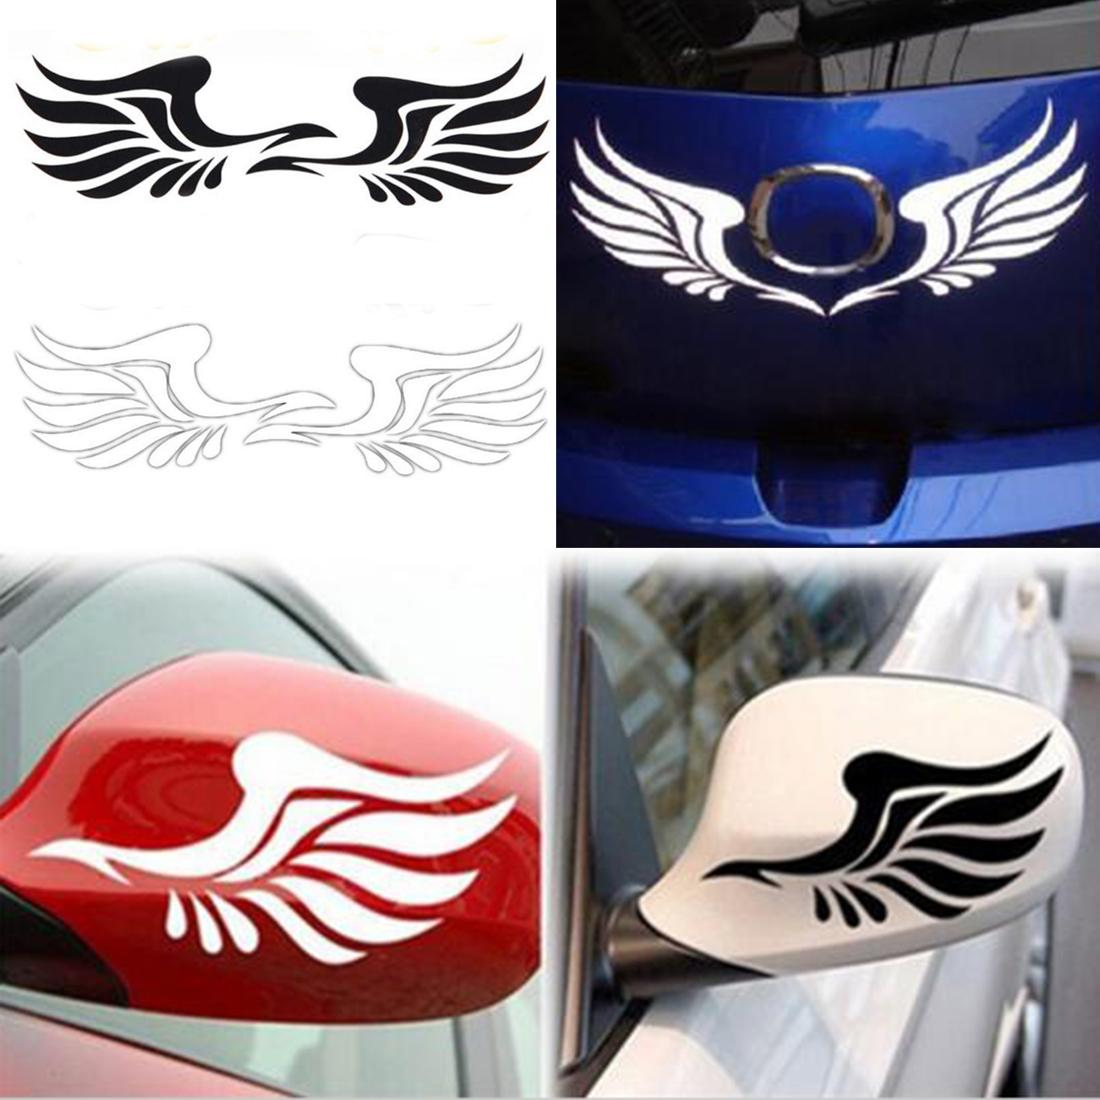 Car side sticker design - Wholesale 2pcs New Design Personality Fire Wings Side Mirror Car Stickers Decorative Stickers Car Styling